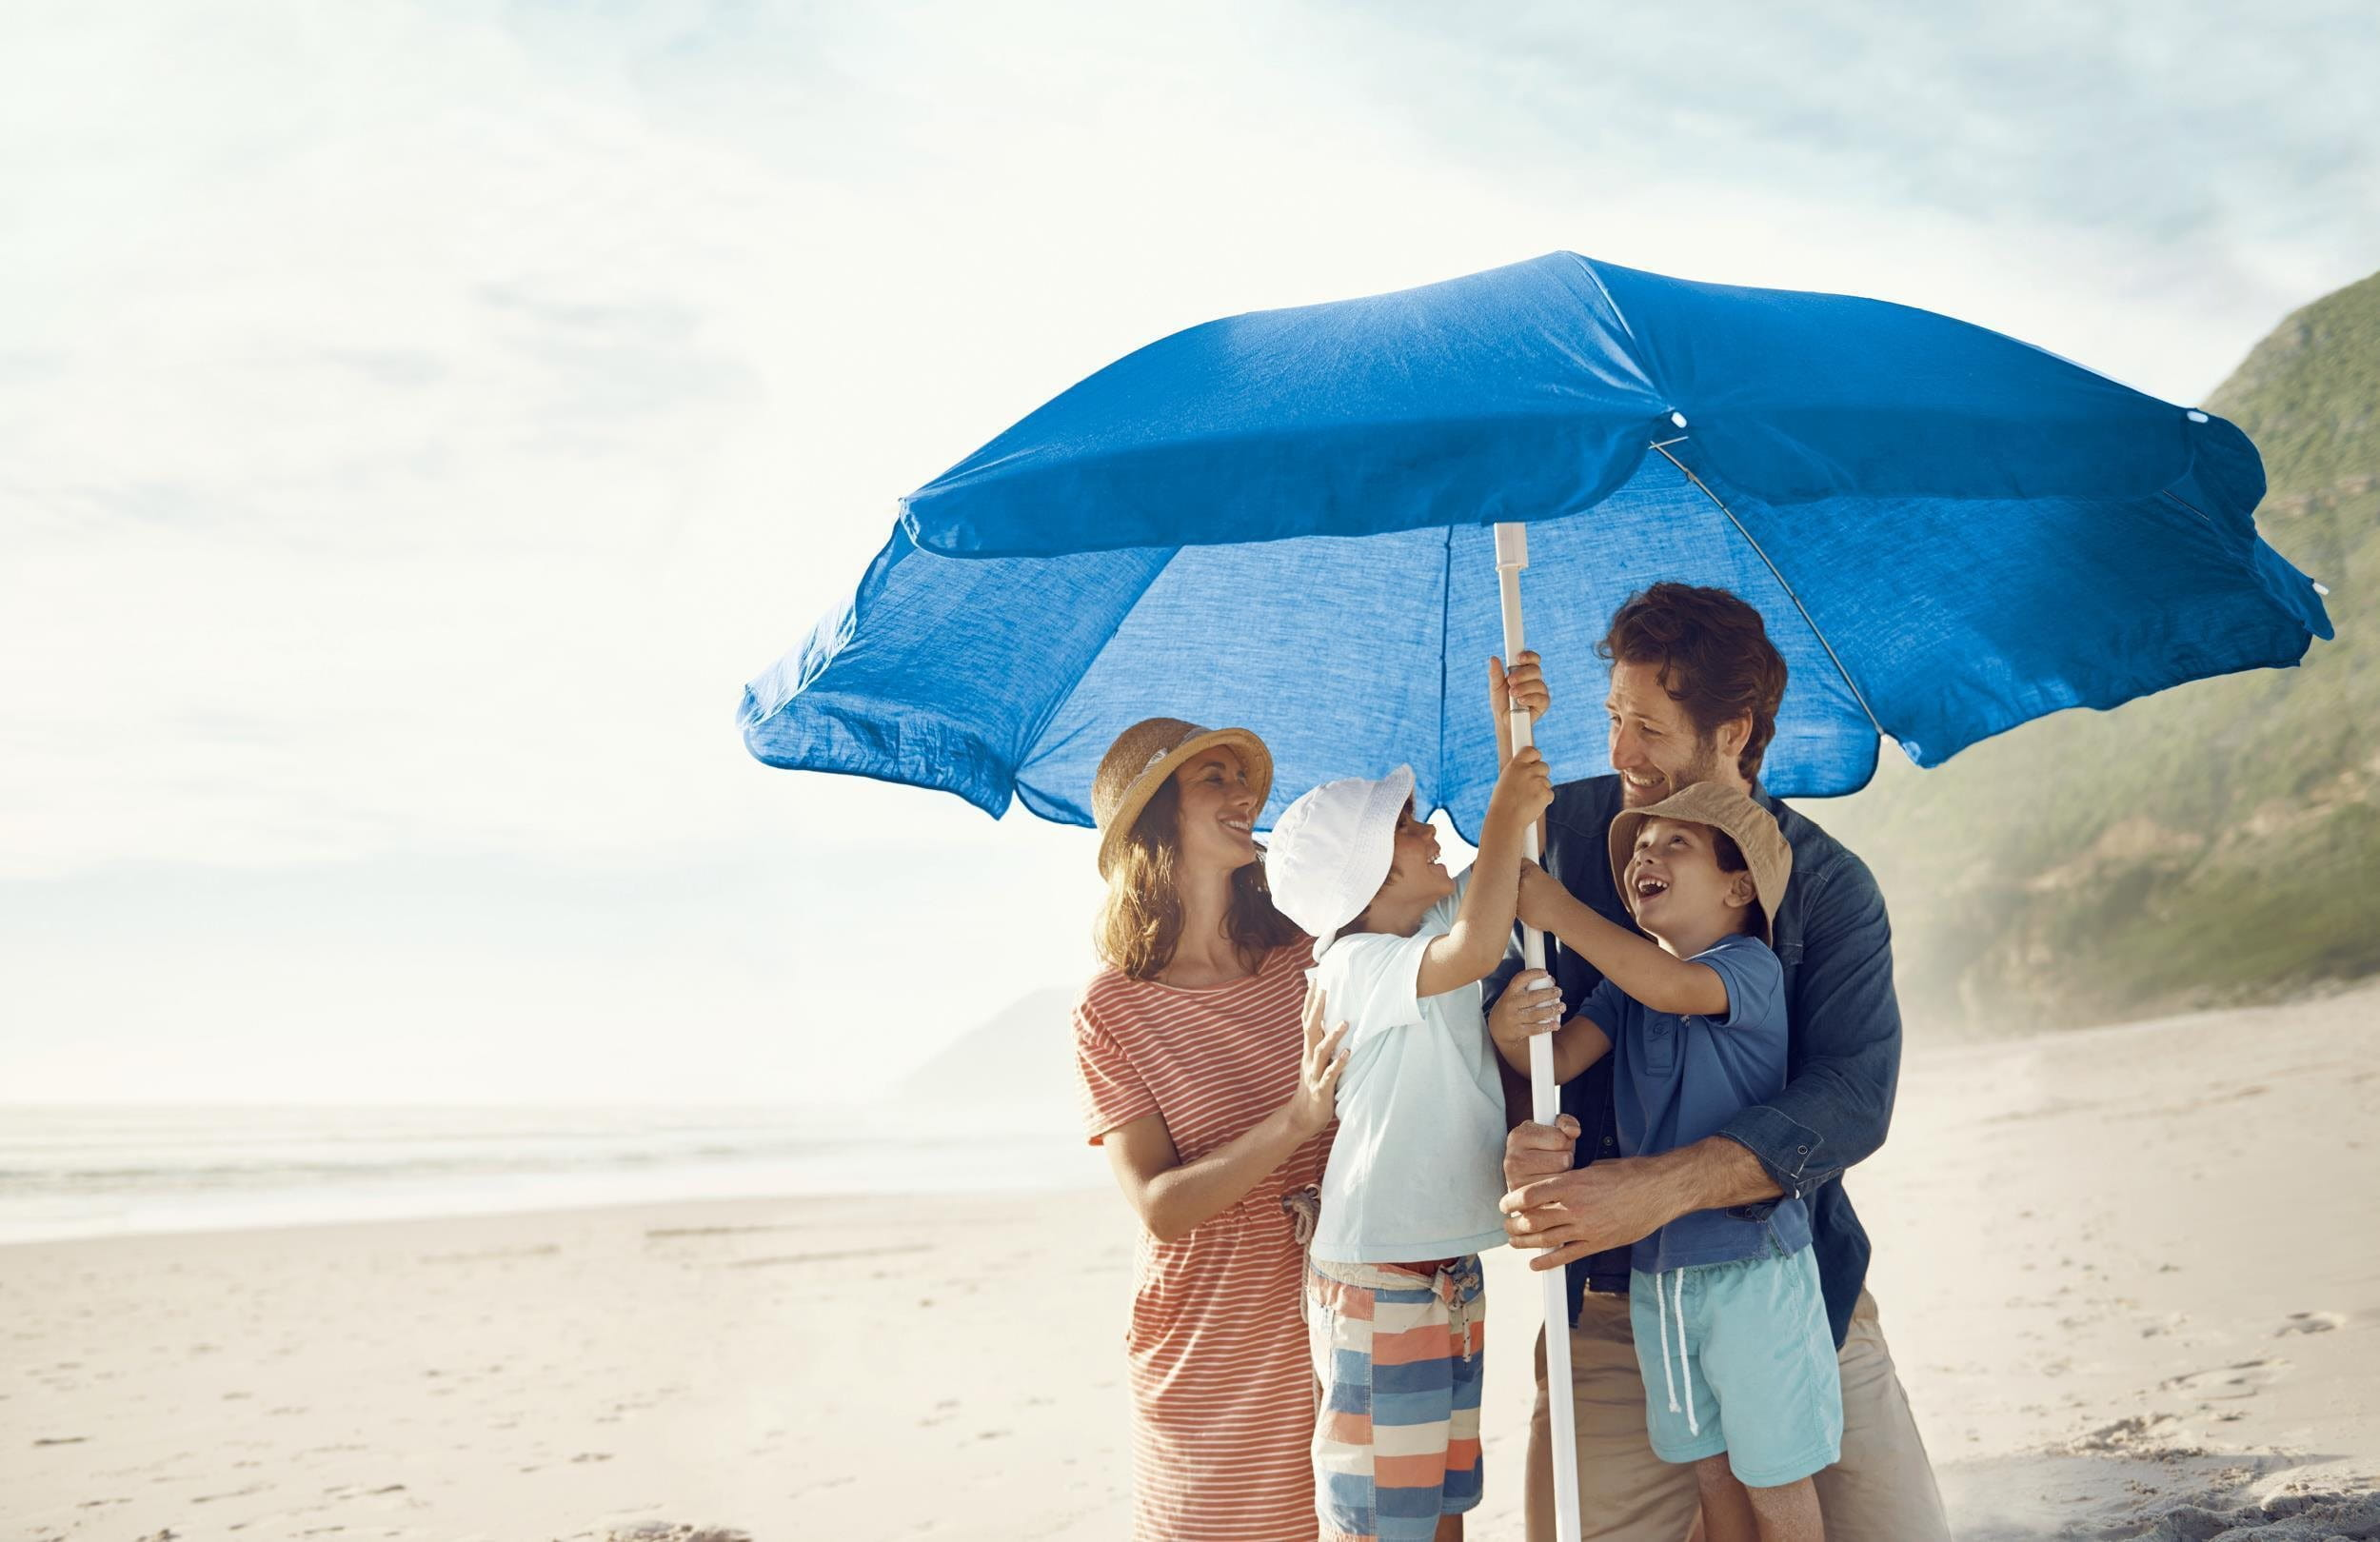 Family on beach with umbrella